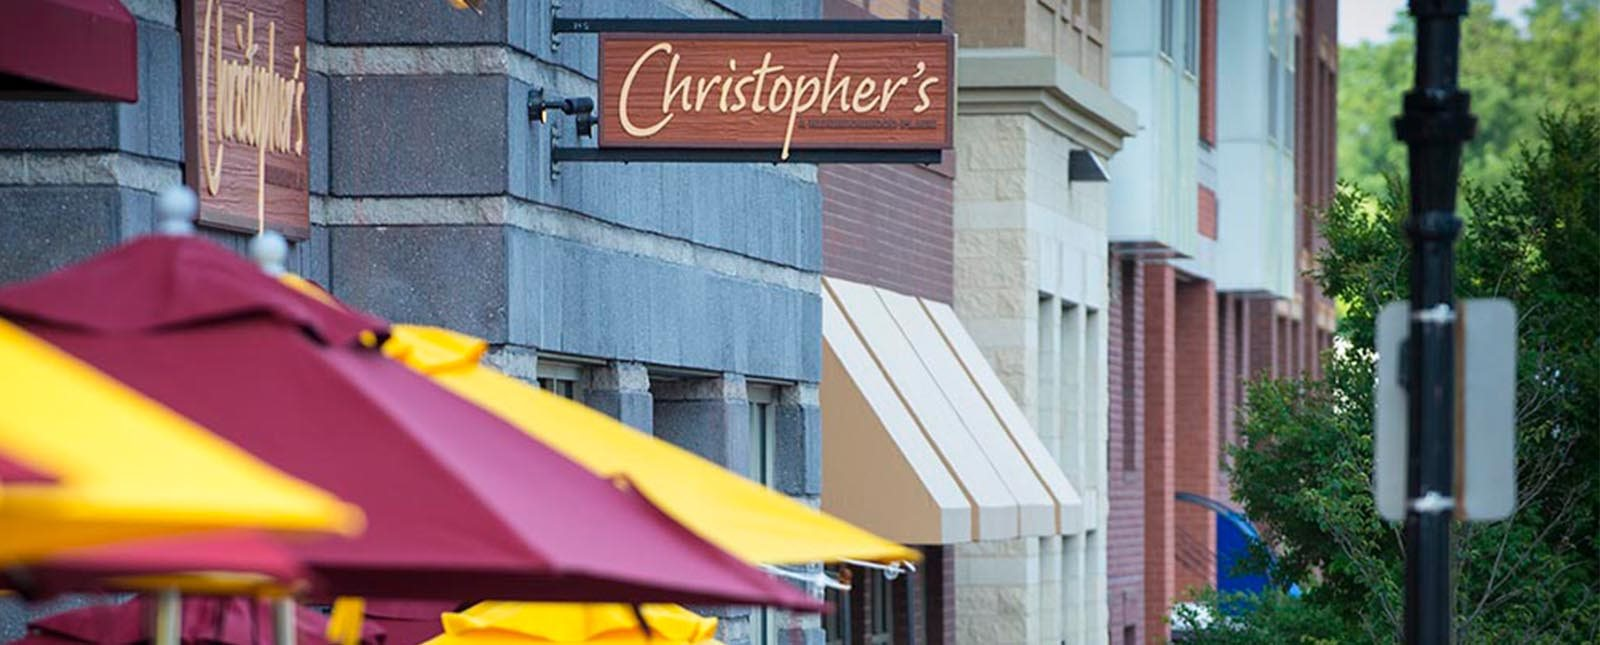 Christopher's near The Haven luxury apartments in Malvern, PA